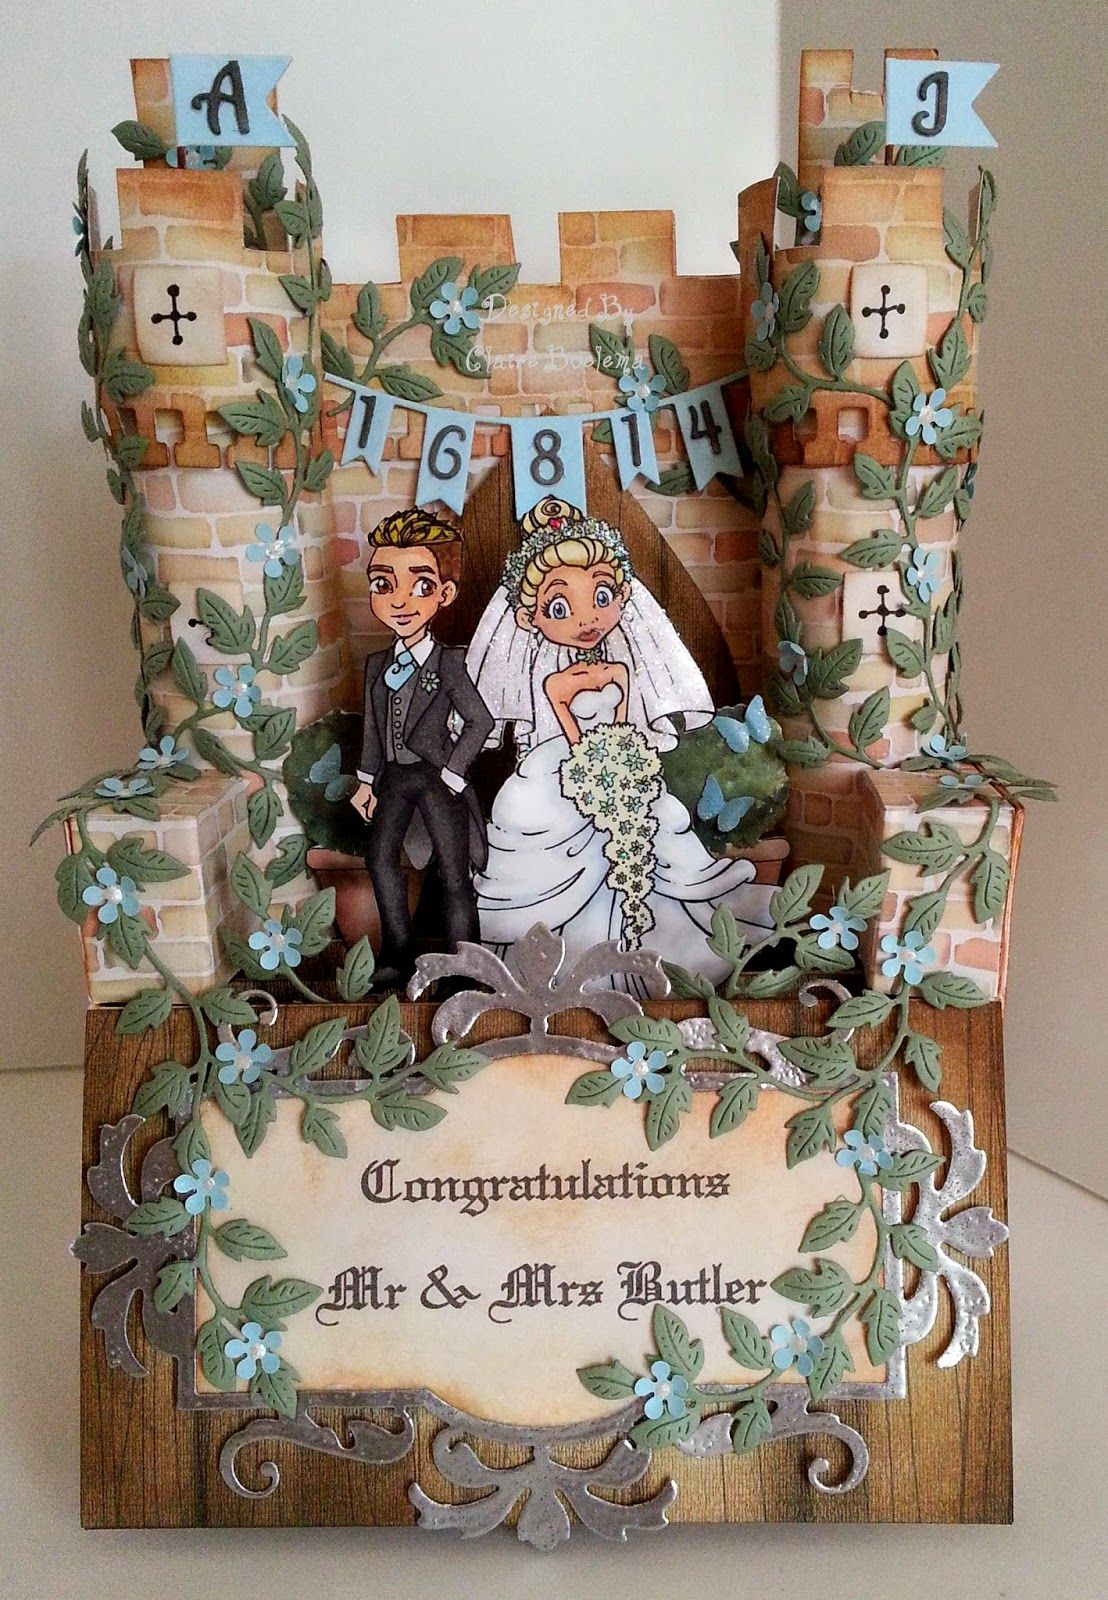 Fairytale castle wedding card make the turrets square for it to